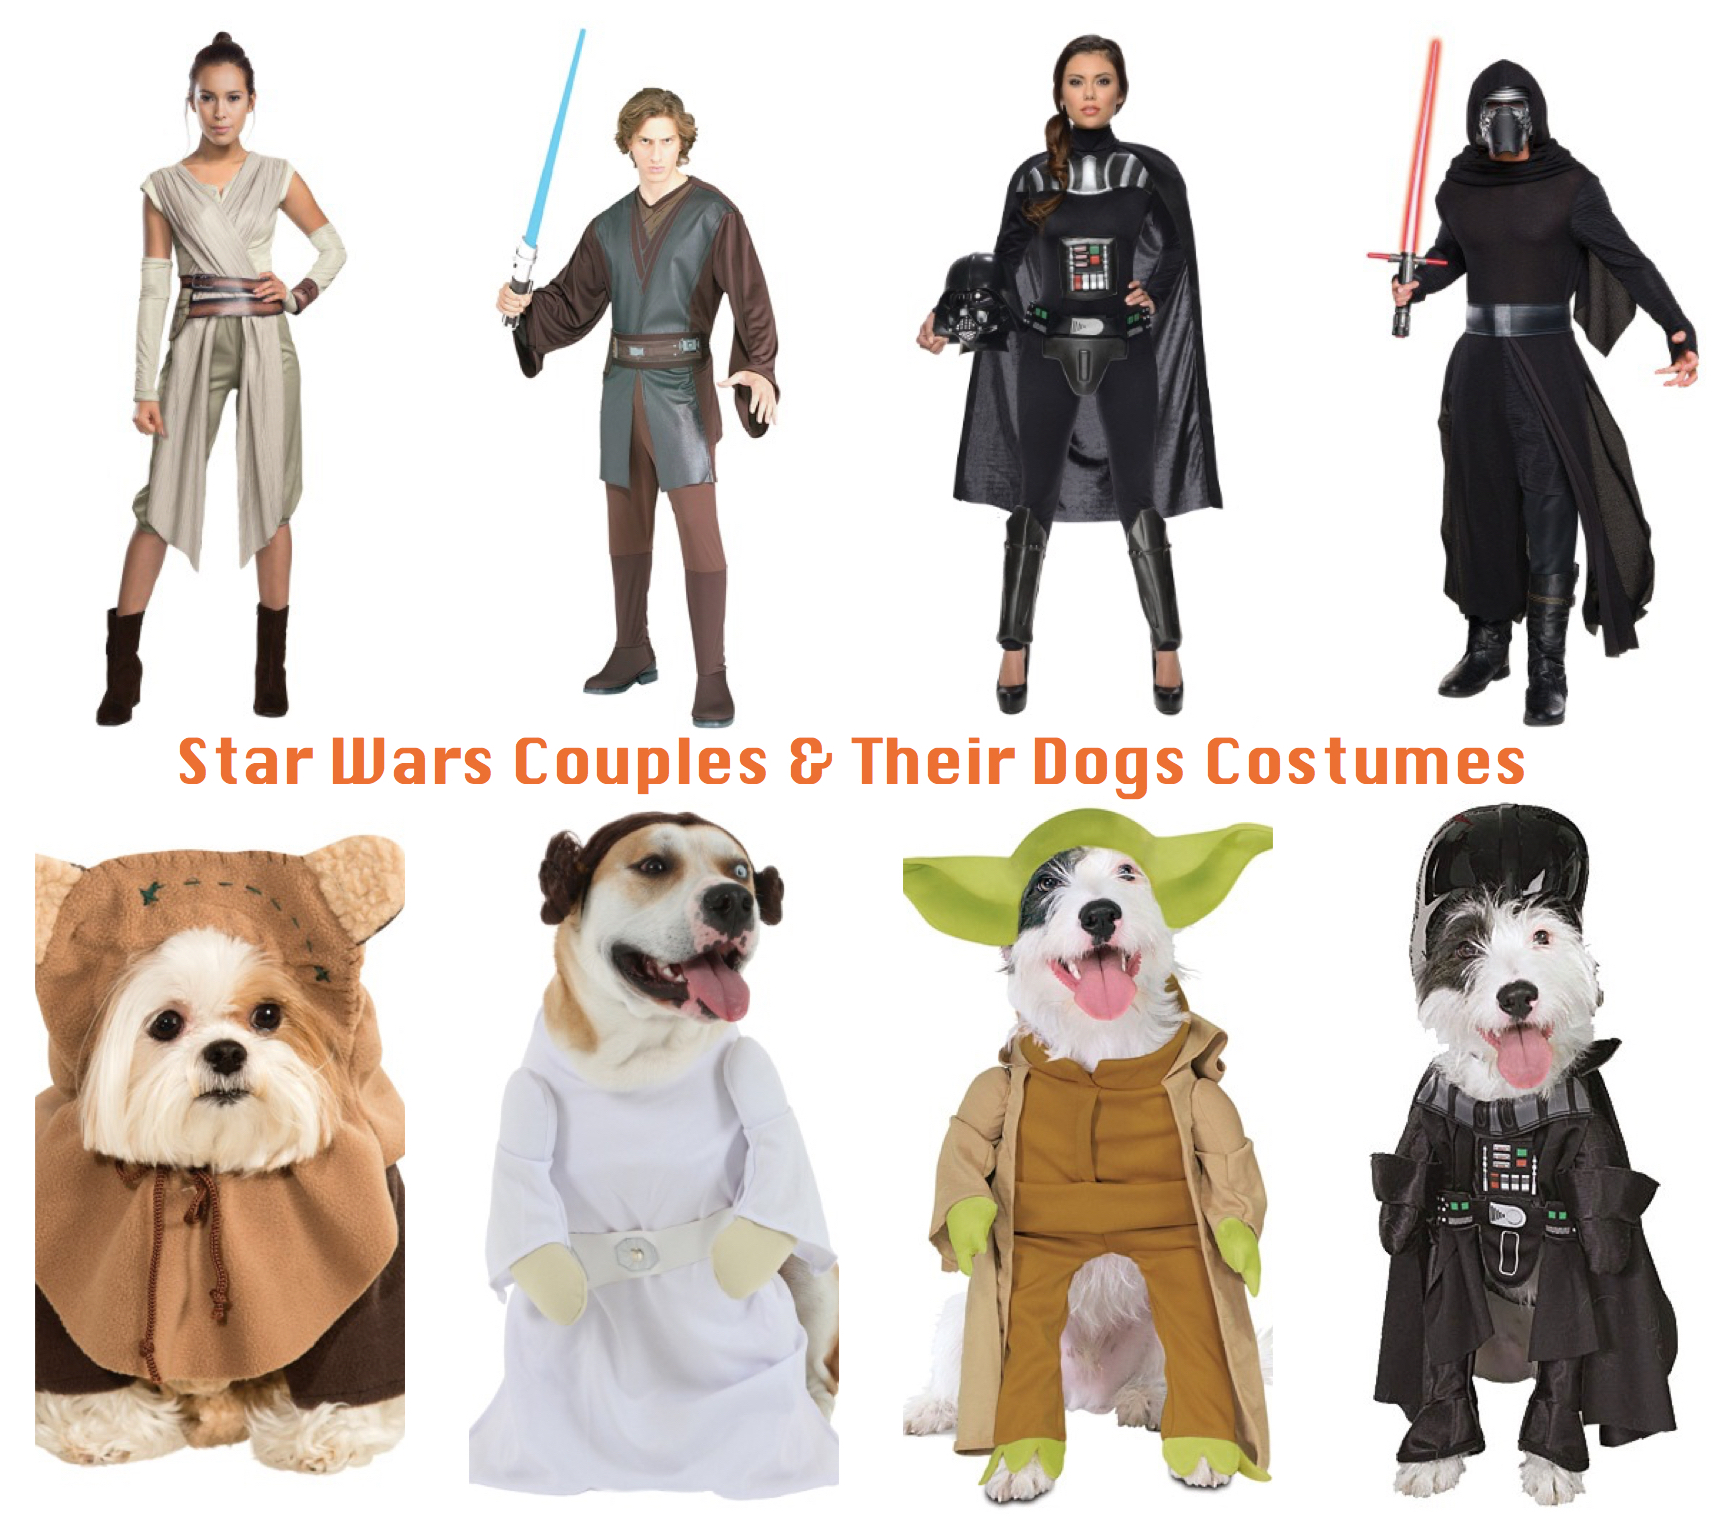 Star Wars Couples and Their Dogs Costumes